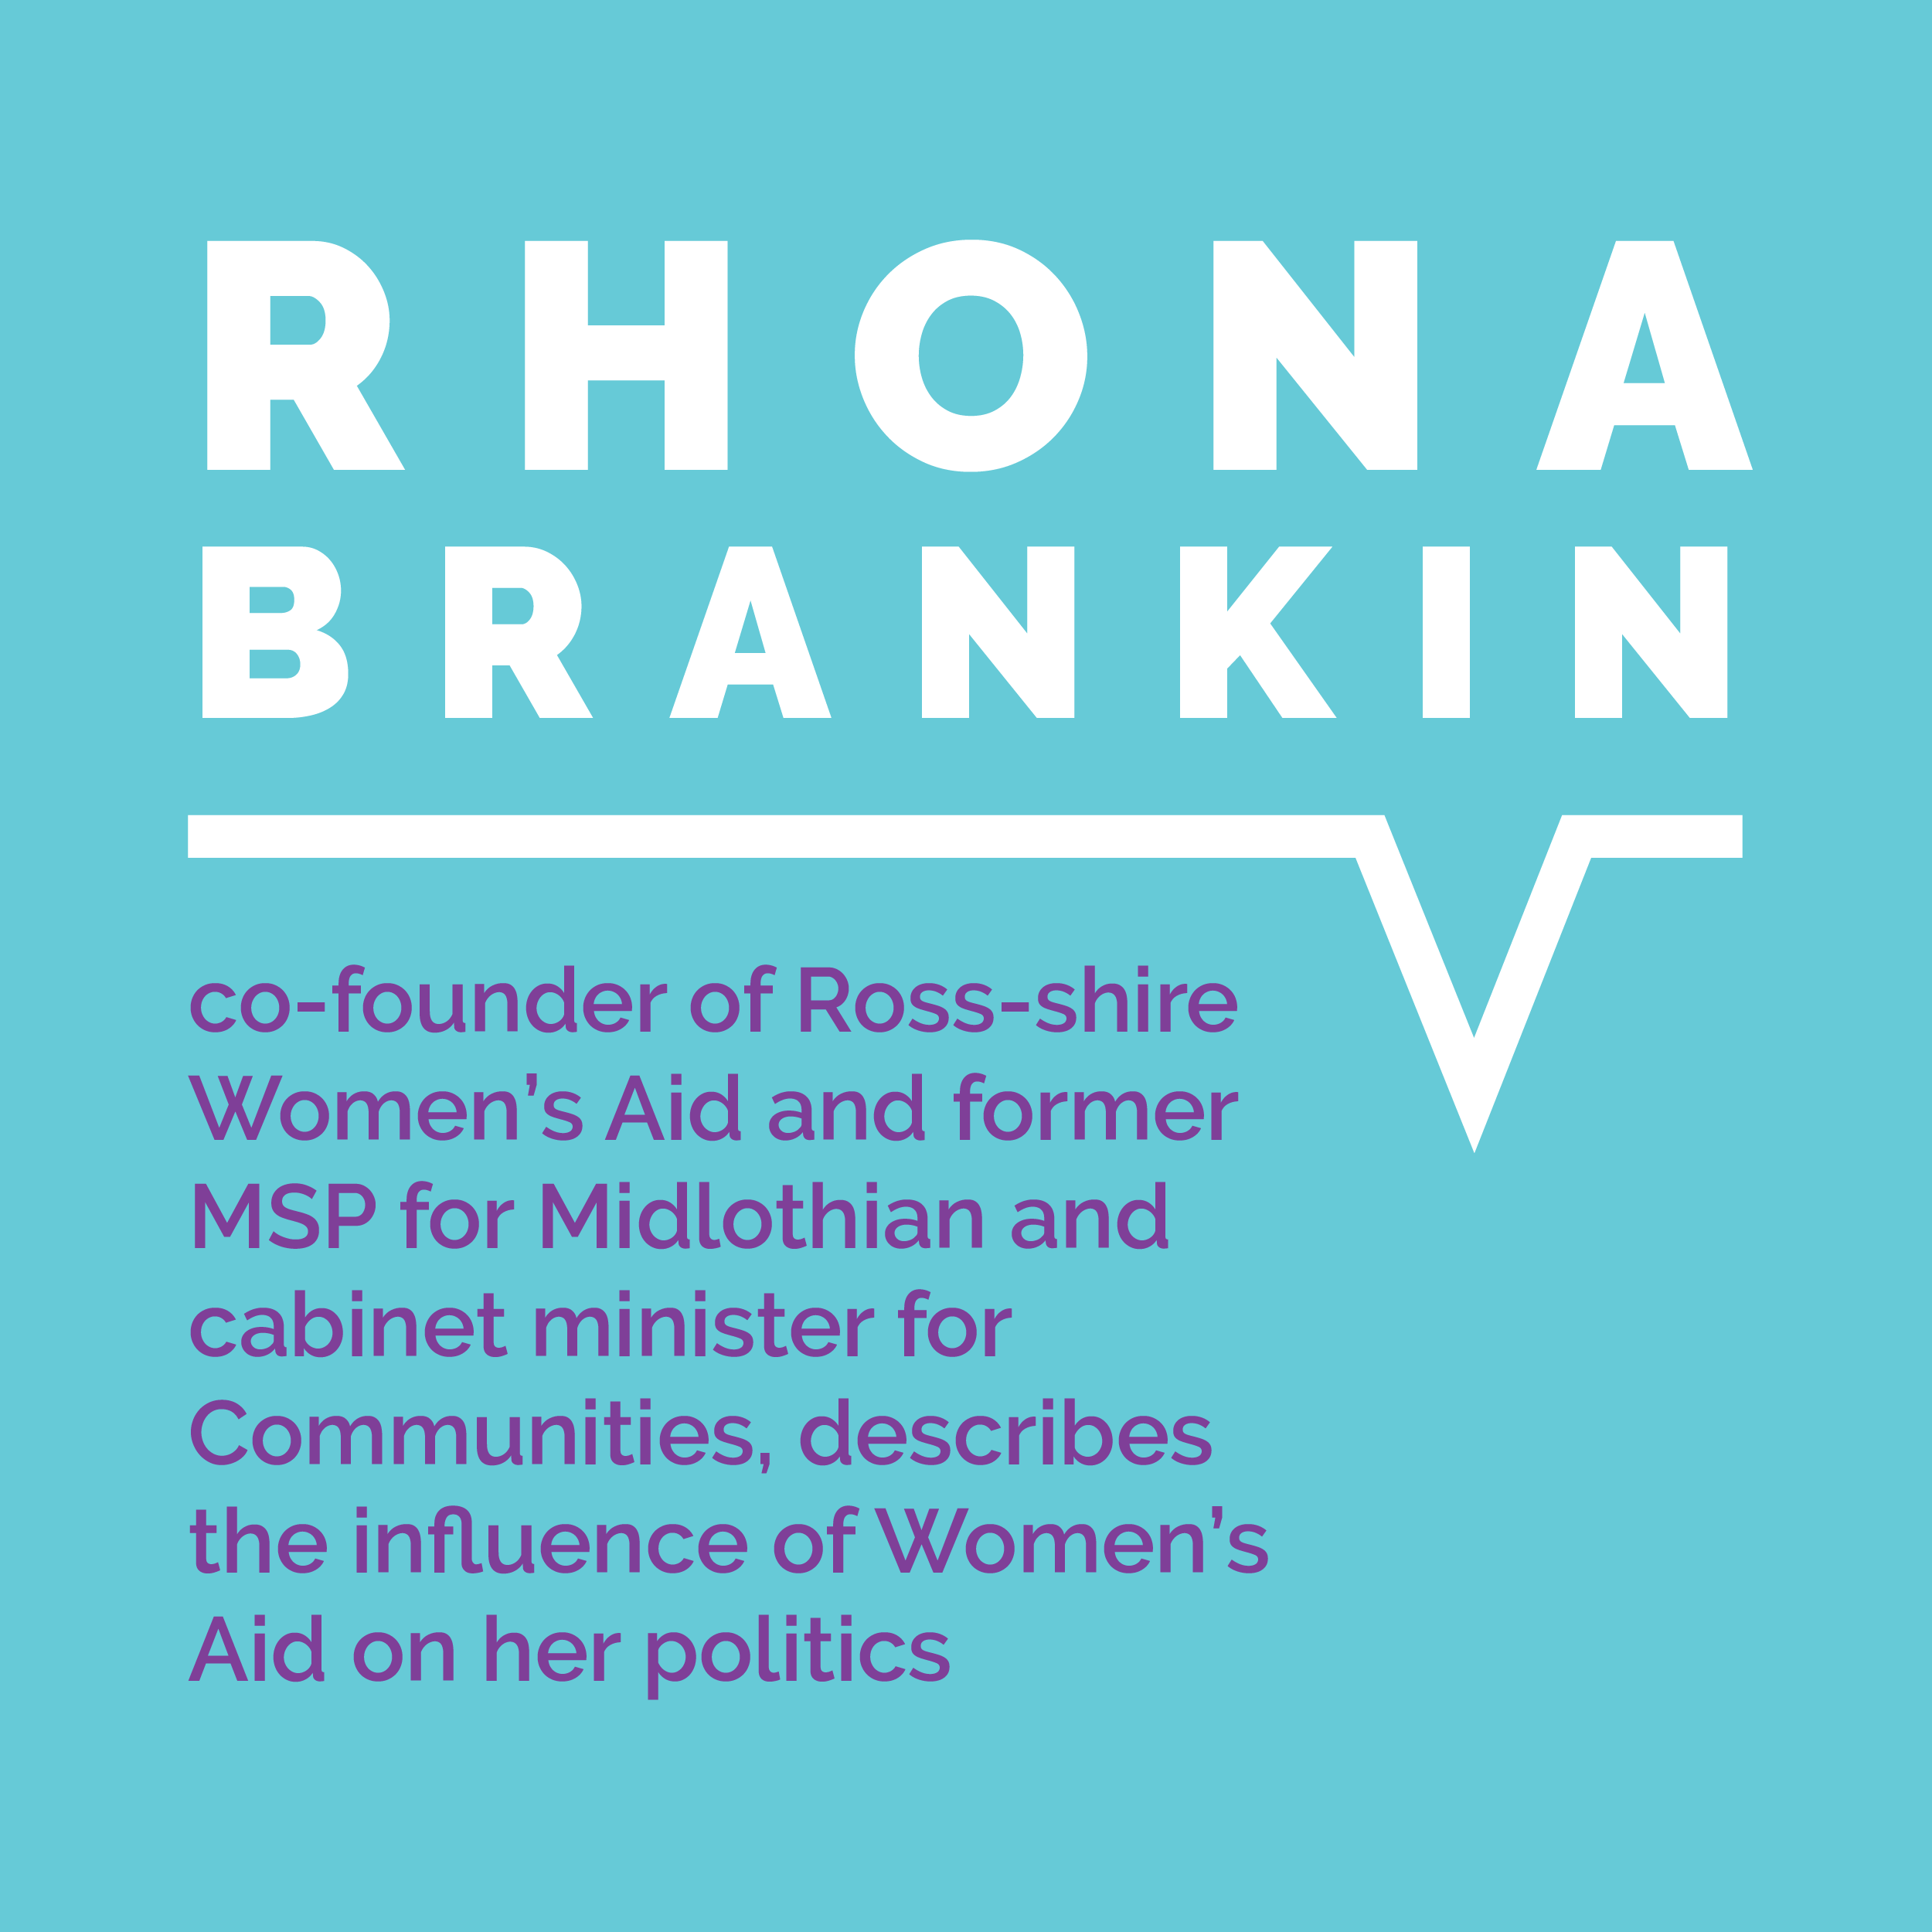 Rhona Brankin, co-founder of Ross-shire Women's Aid and former MSP for Midlothian and cabinet minister for Communities, describes the influence of Women's Aid on her politics